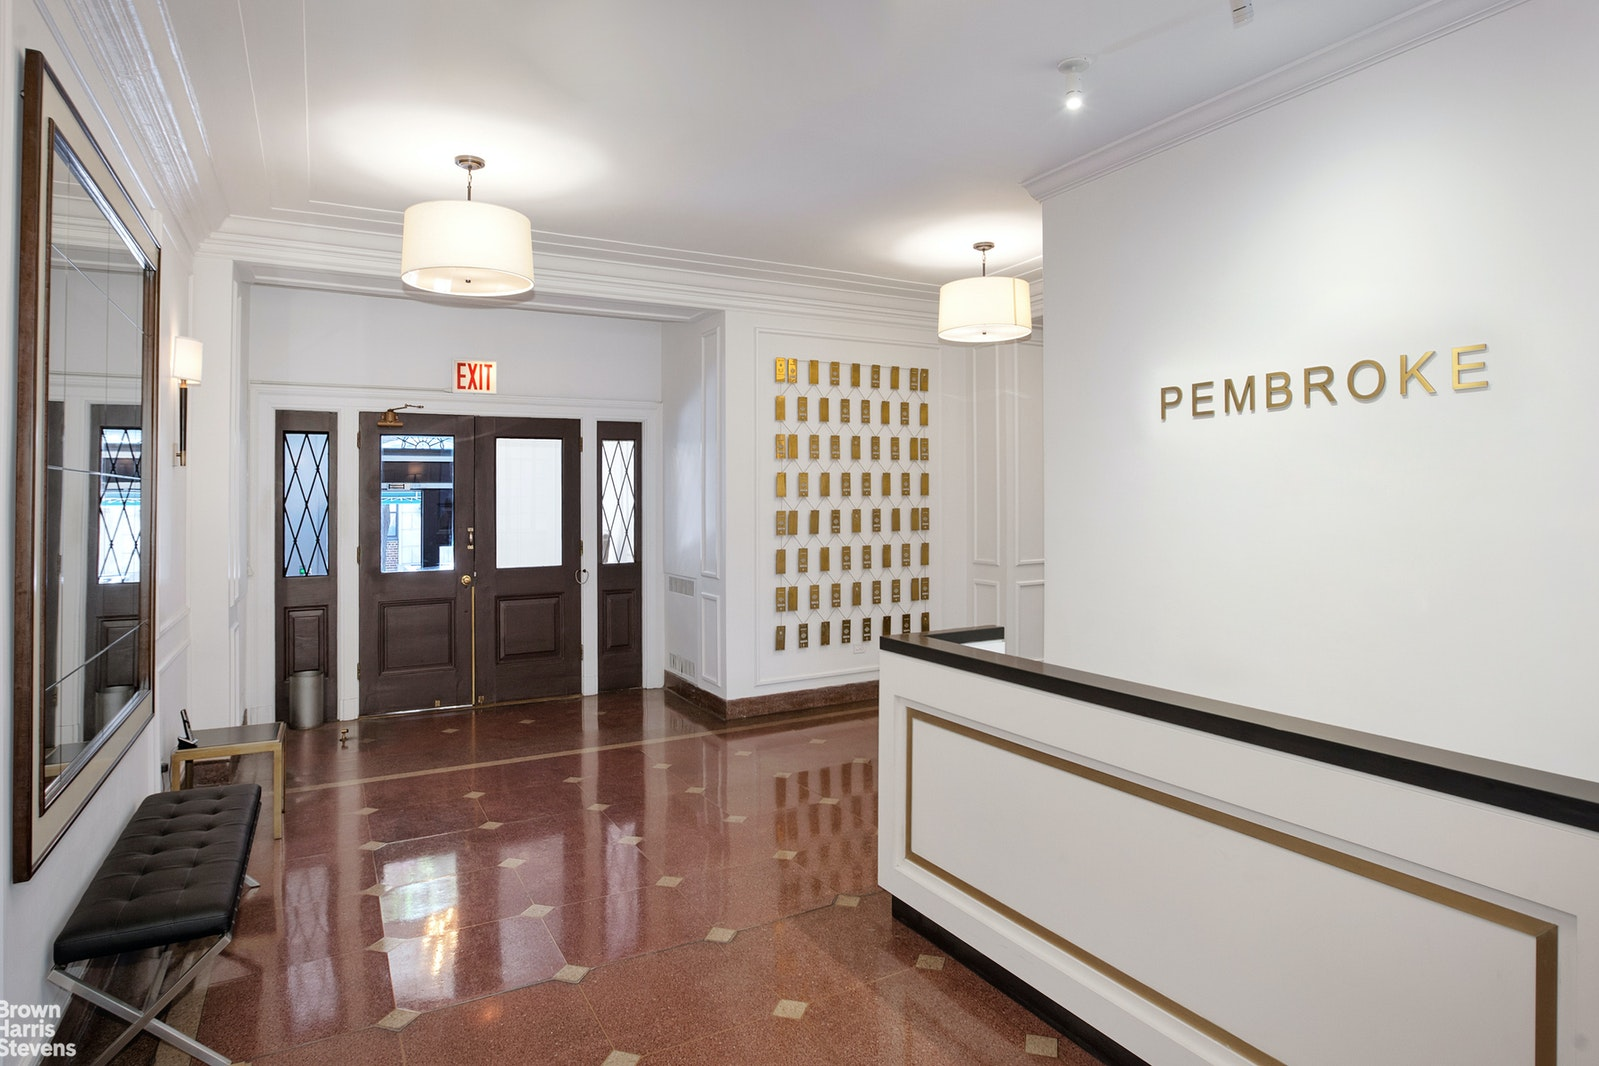 Apartment for sale at 357 West 55th Street, Apt 5/6A